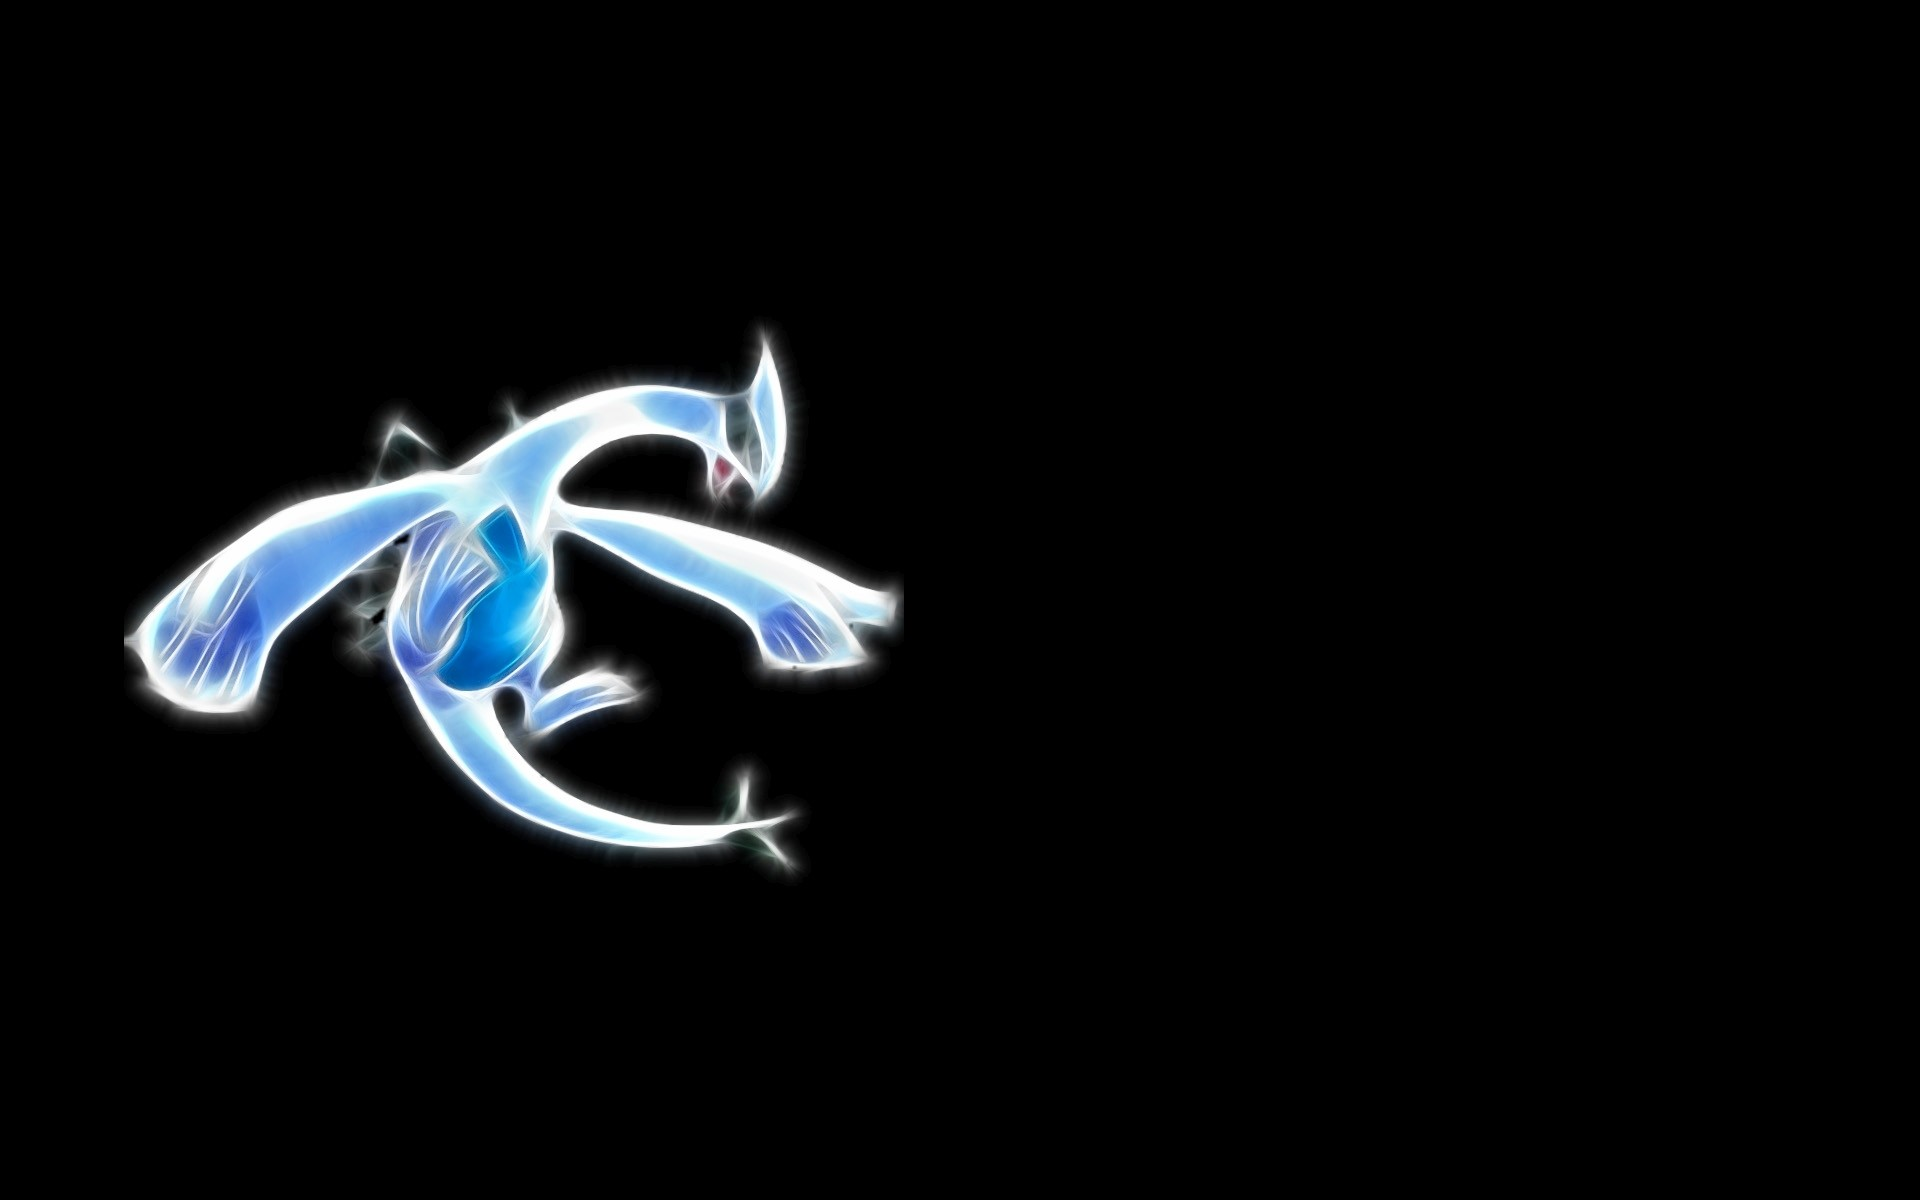 Res: 1920x1200, Lugia - Pokemon HD Wallpaper 1920x1080 Lugia - Pokemon HD Wallpaper